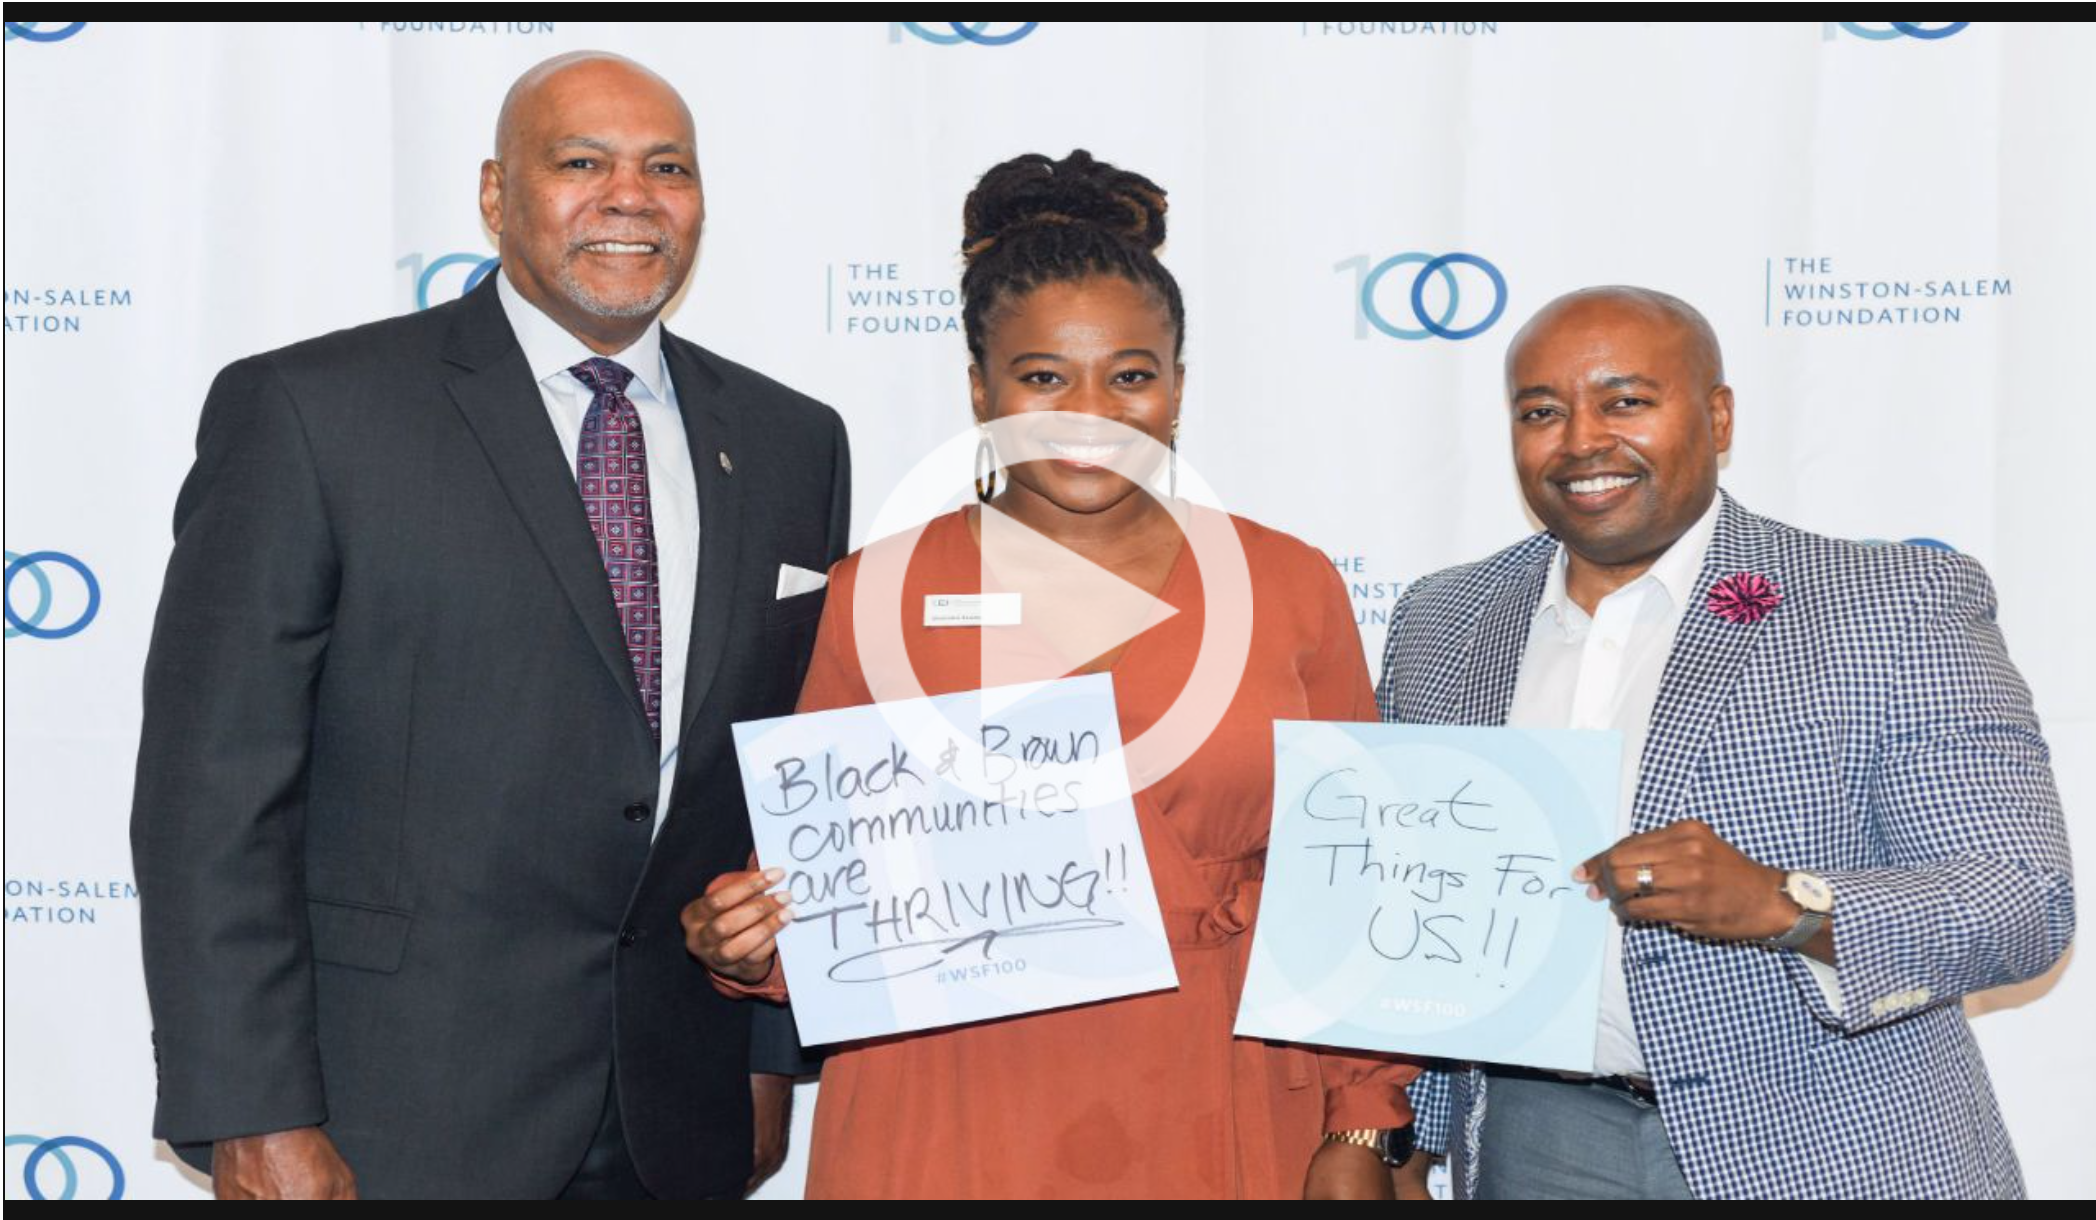 Black Philanthropy Initiative Grant Video